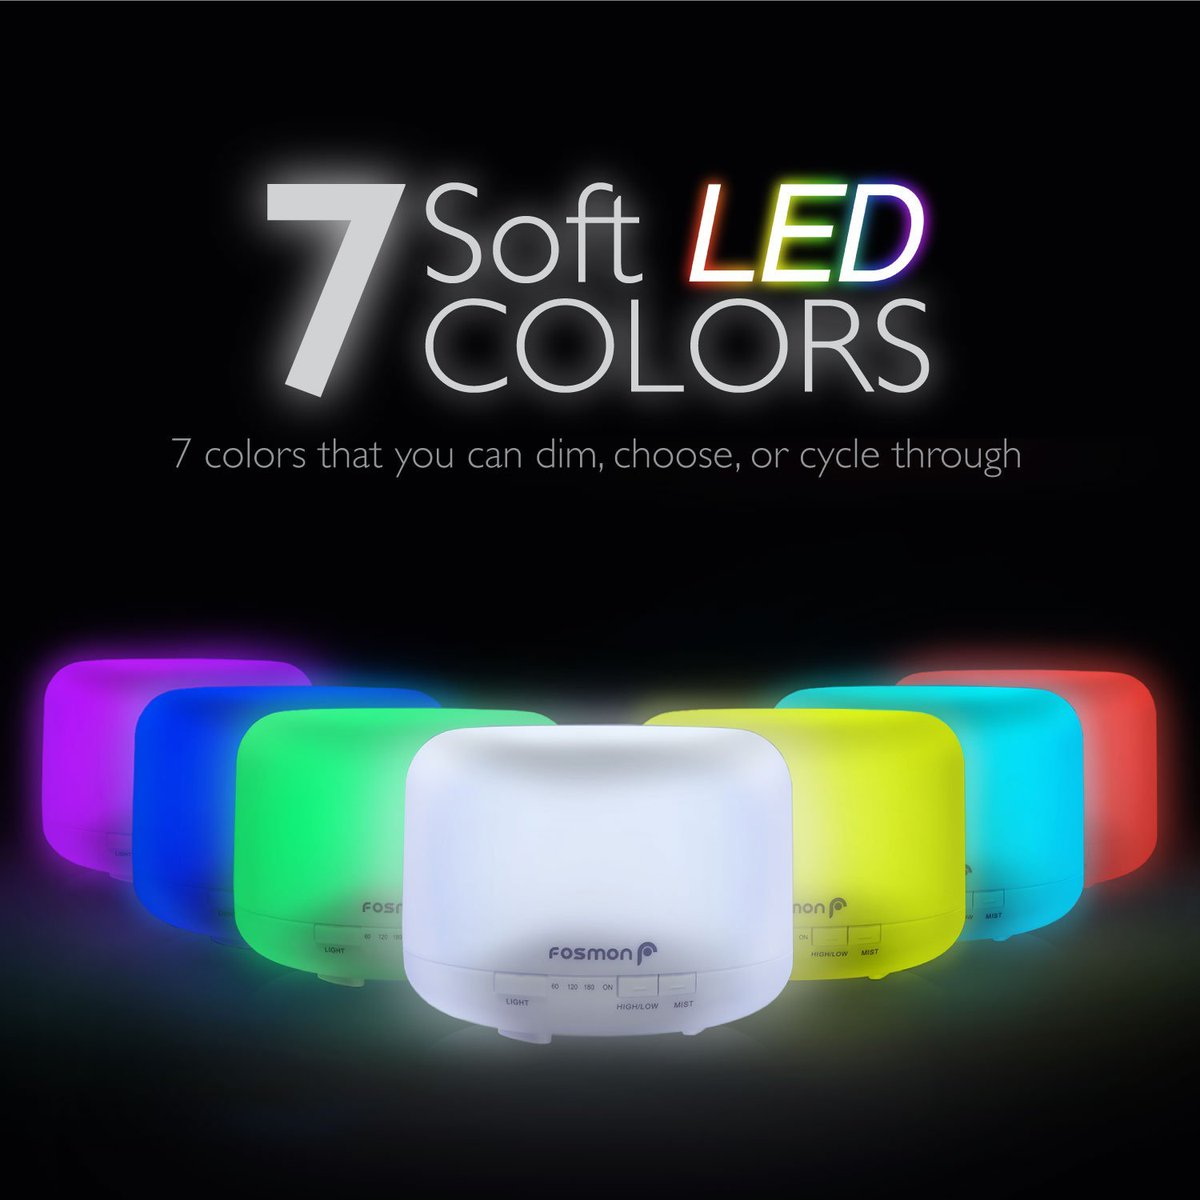 Each Color Has A Bright And Dim Option Led Colors Include Natural White Purple Green Red Pink Yellow Blue Order Now For Just 21 99